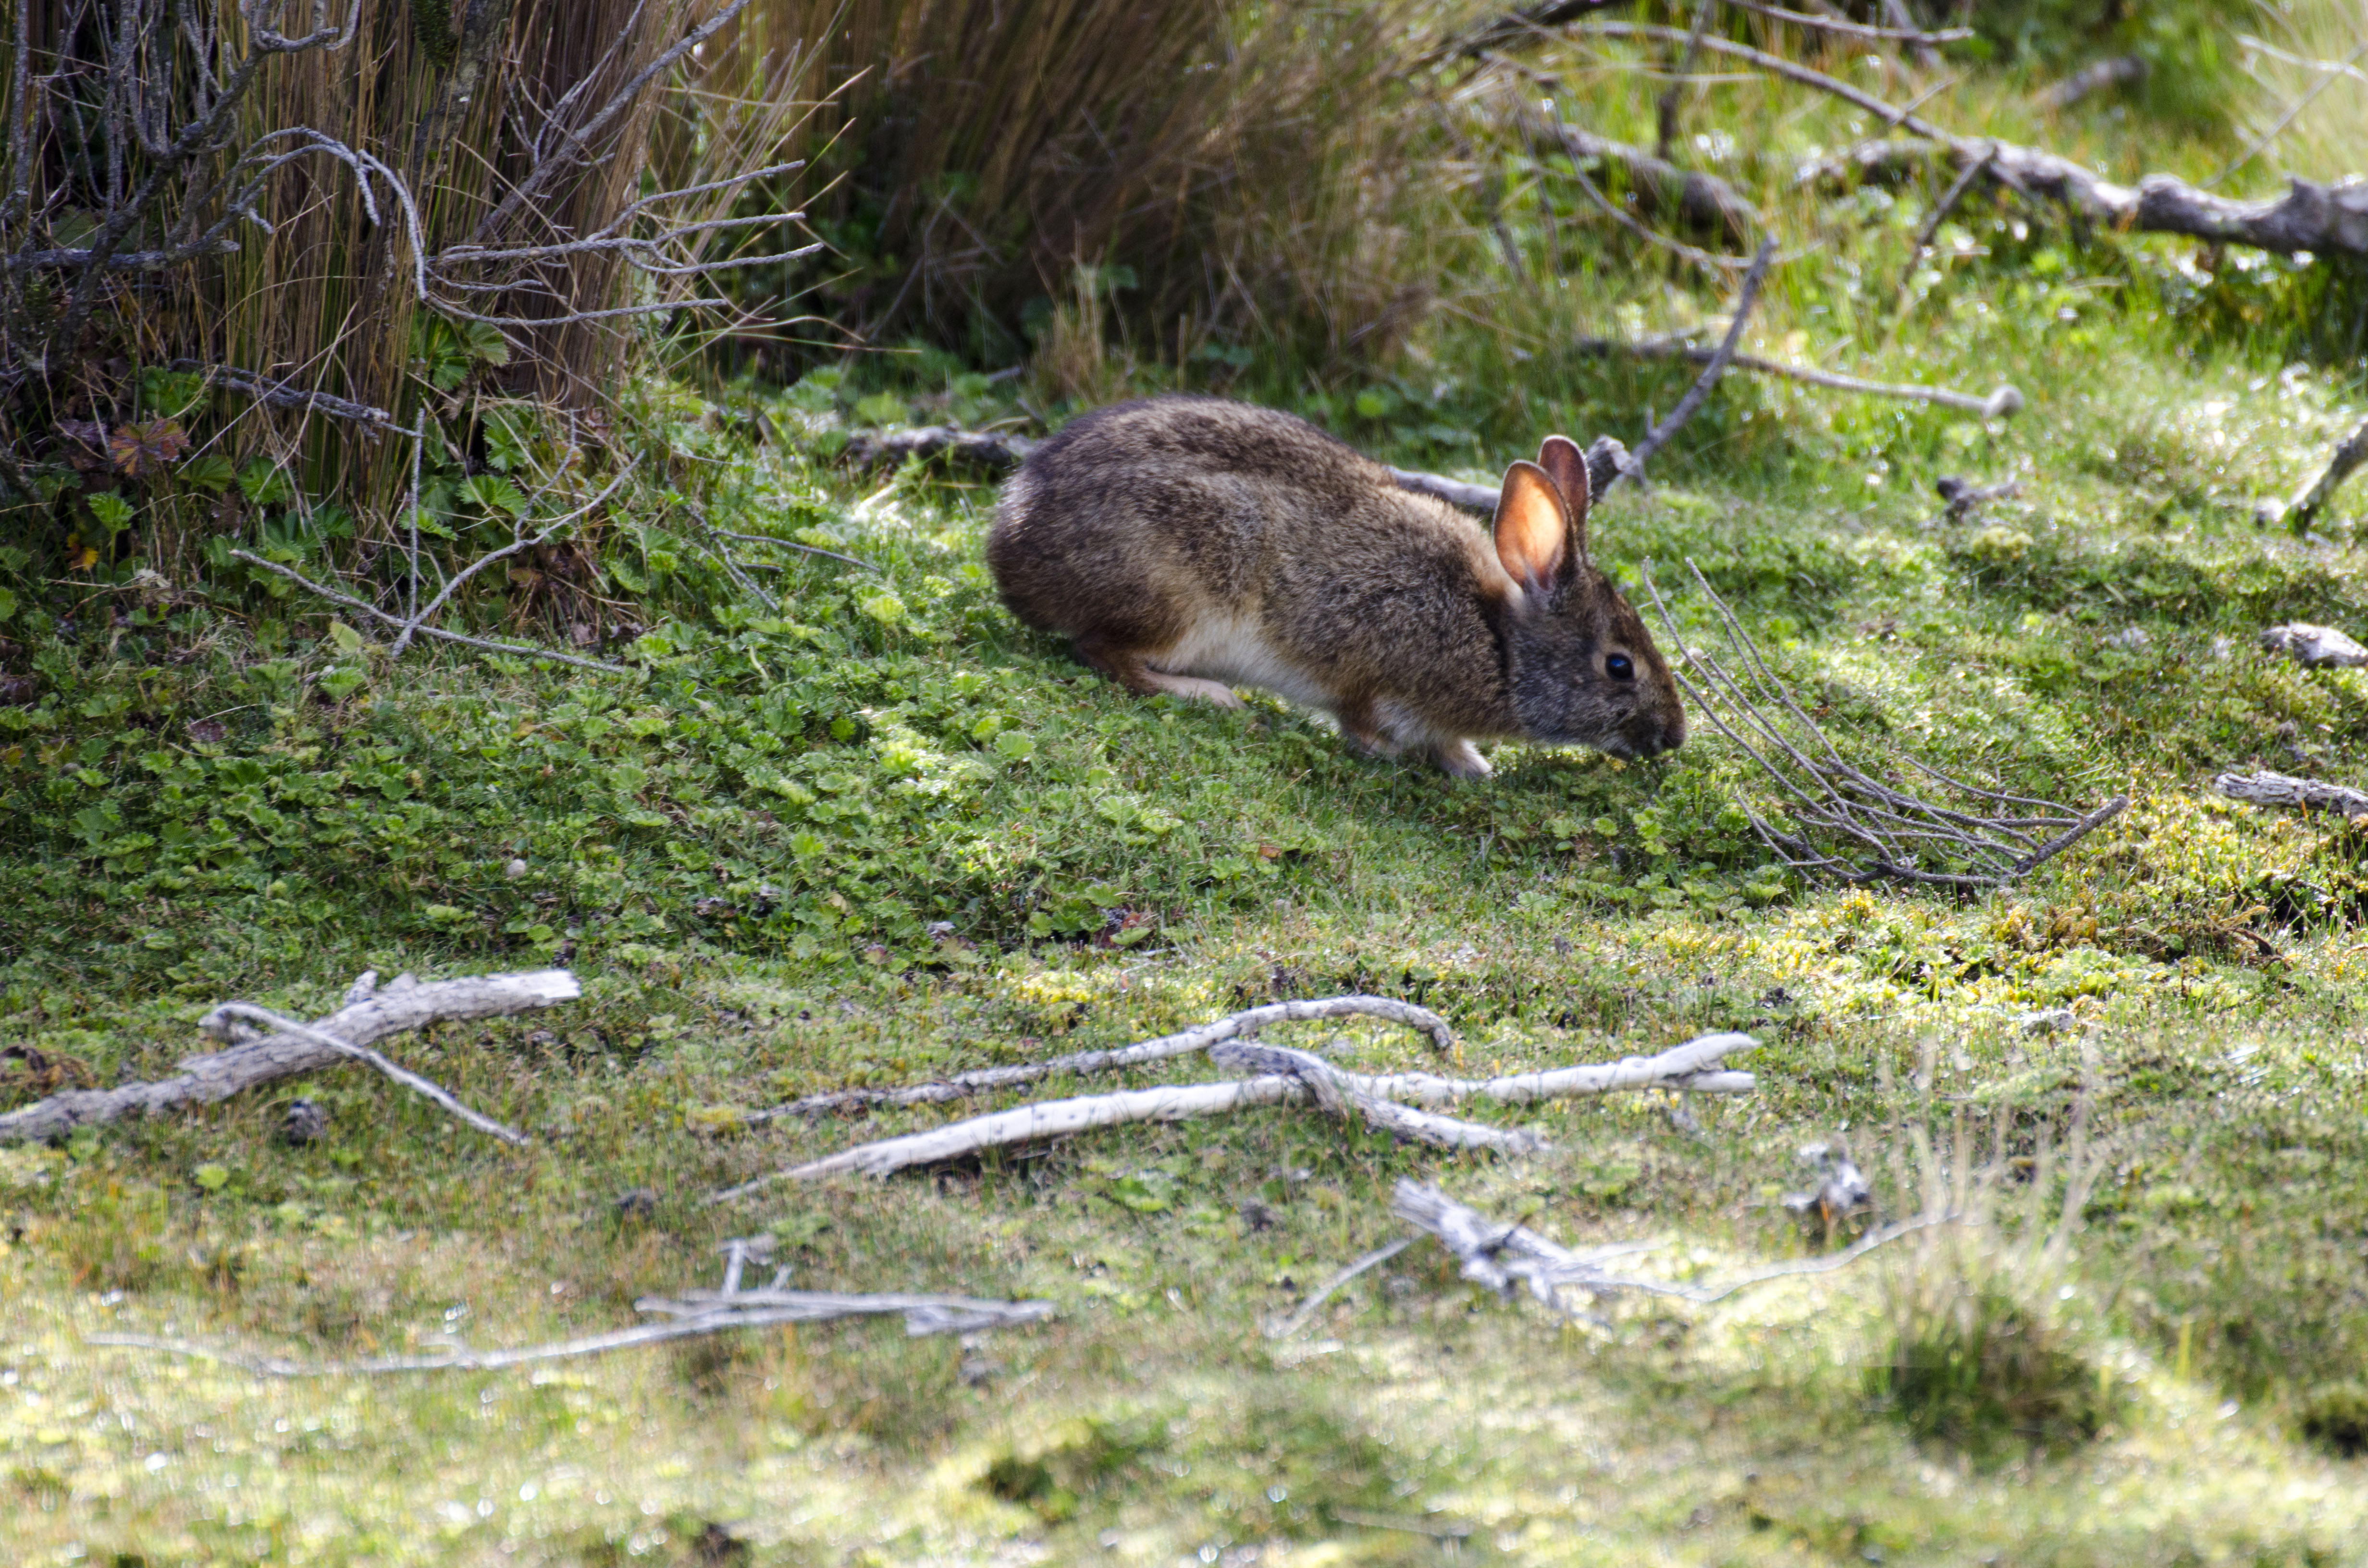 There were several rabbits to be seen on the trail at Limpiopungo.